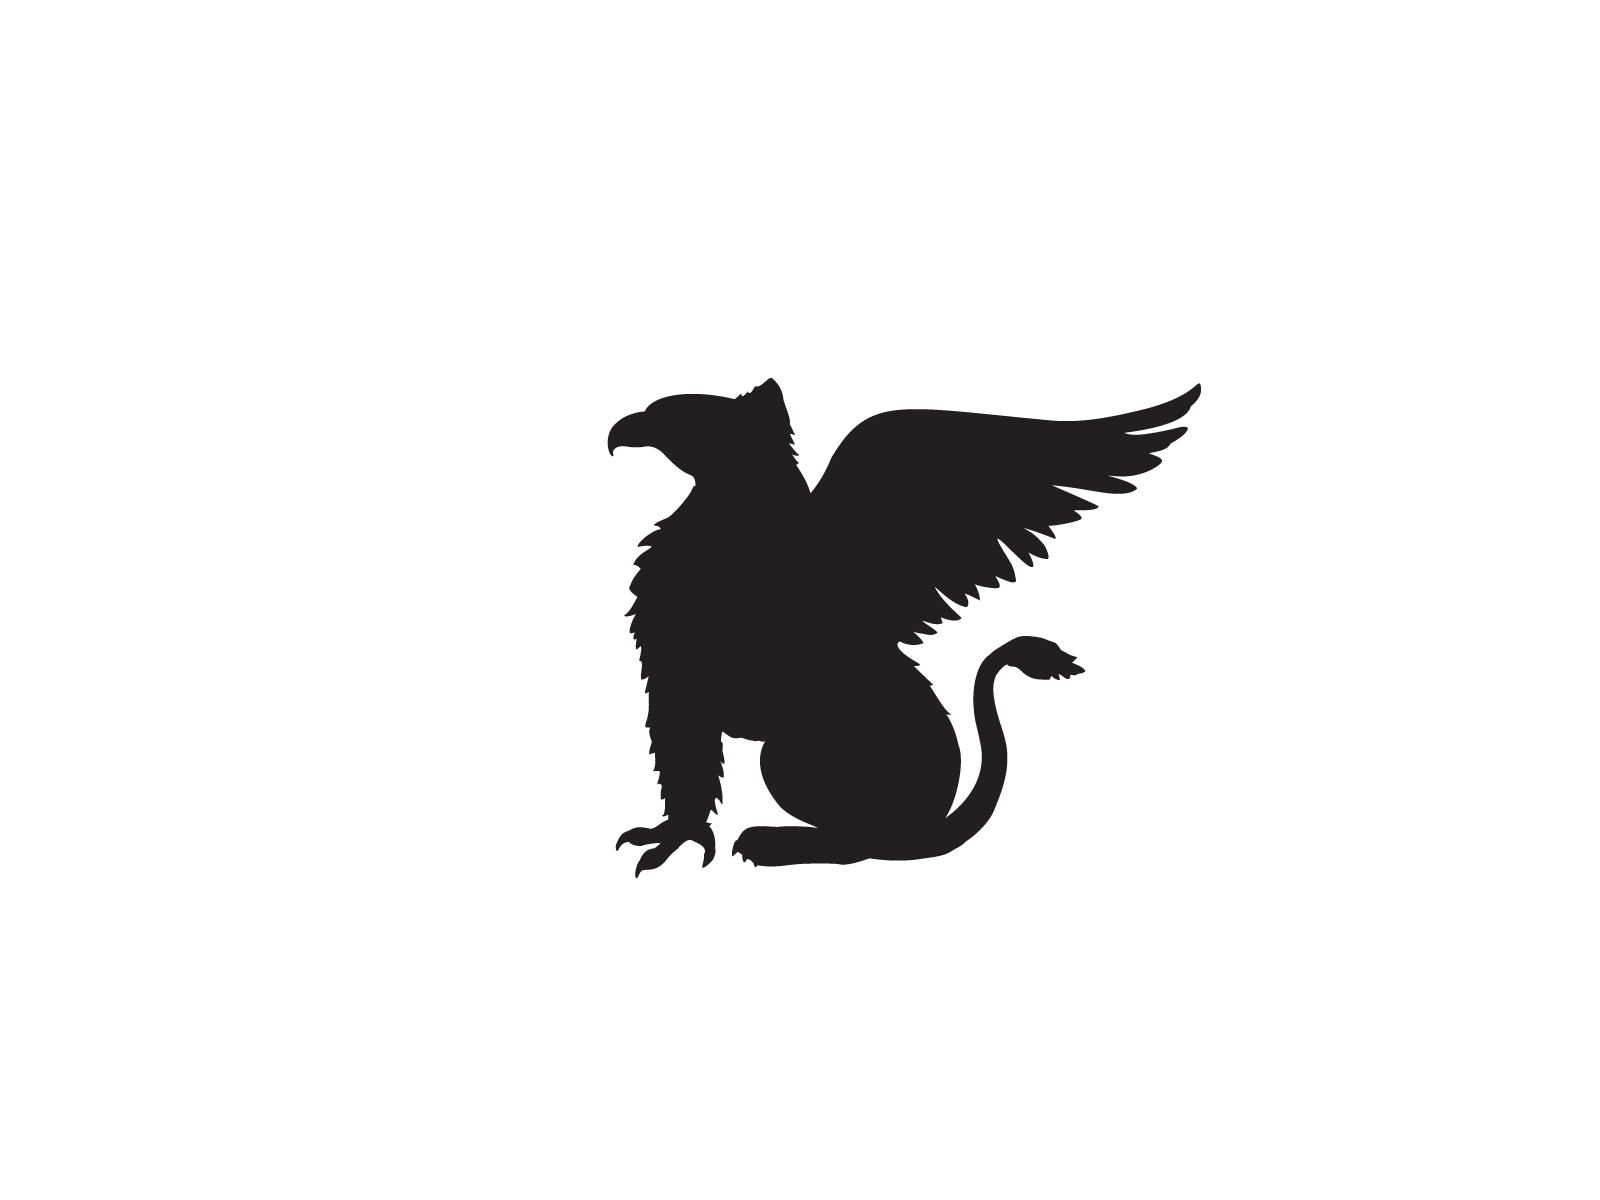 The Jw Marriott Logogriffin Is A Mythical Creature That Symbolizes